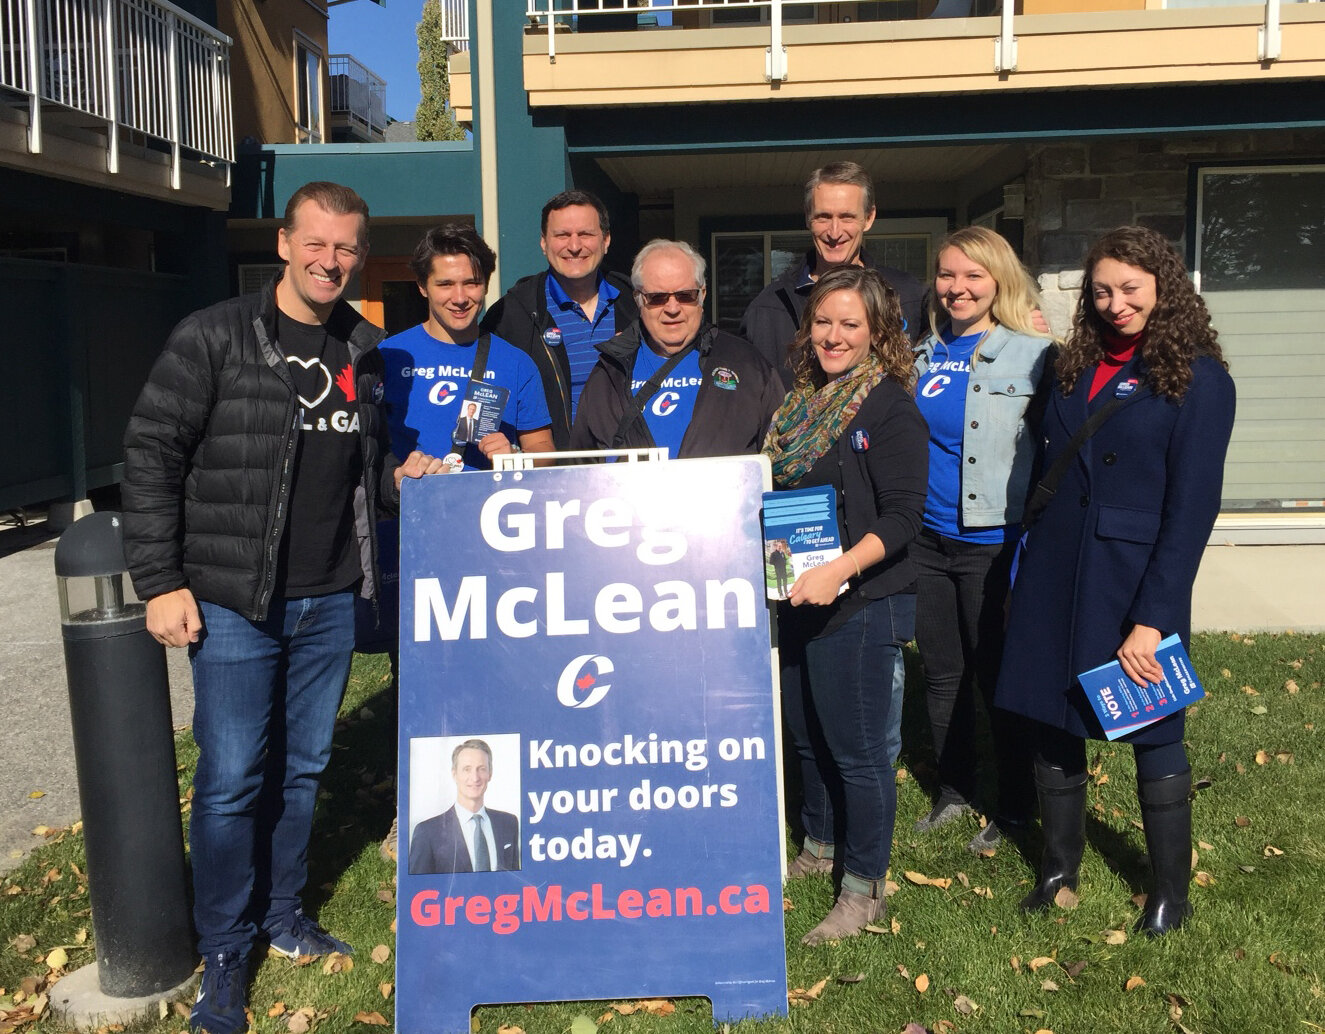 Provincial MLAs Mike Ellis and Hon. Rebecca Schultz joined my doorknocking team over the weekend. Doorknocking continues this week as we try to wrap up the final doors in Calgary Centre. If you have two hours to spare one evening, please sign up at  https://volunteersignup.org/PMPLY